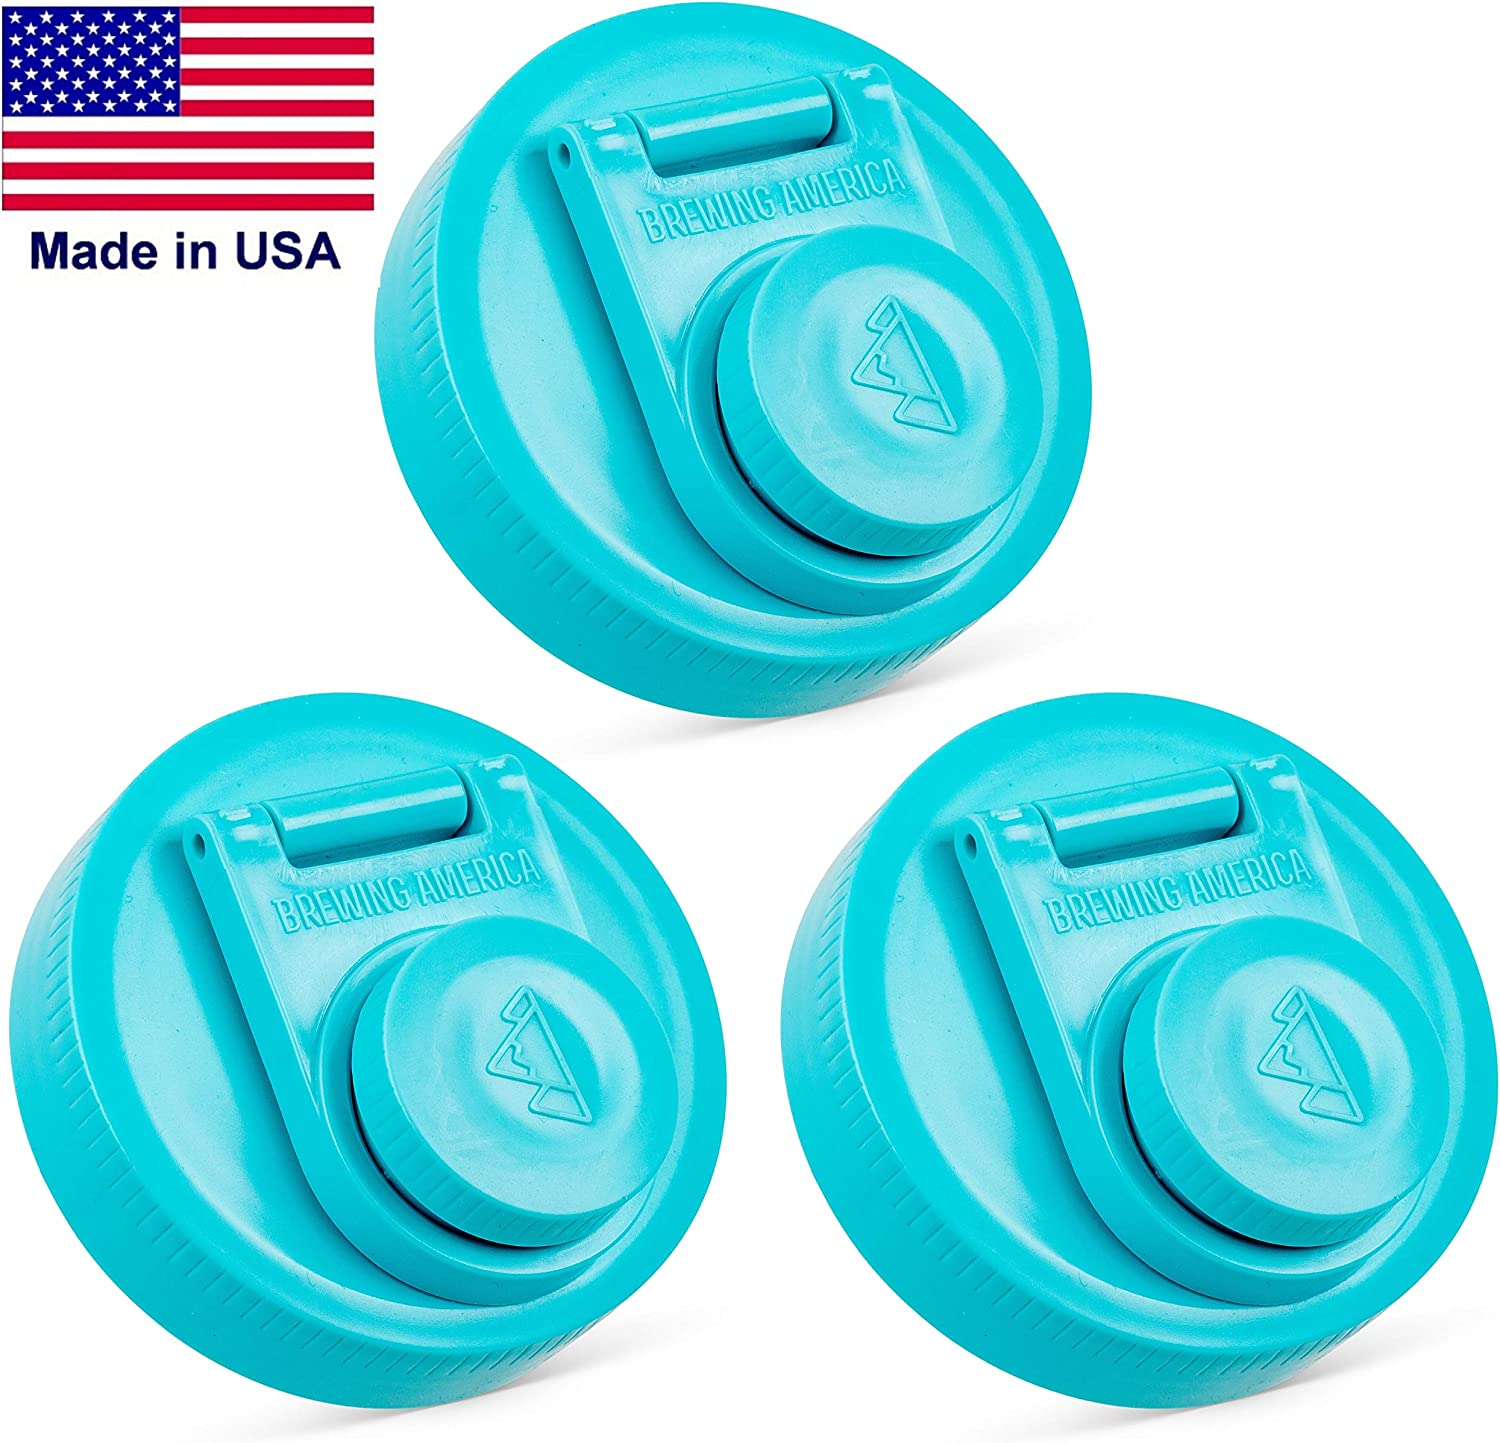 Mason Jar Lids Wide Mouth Plastic 3 Pack - Leak Proof with Flip Cap Pouring Spout and Drink Hole - Fits Kerr and Ball Canning Jars - Wet /Dry Food and Liquid Storage - MADE IN USA - Teal 3pk